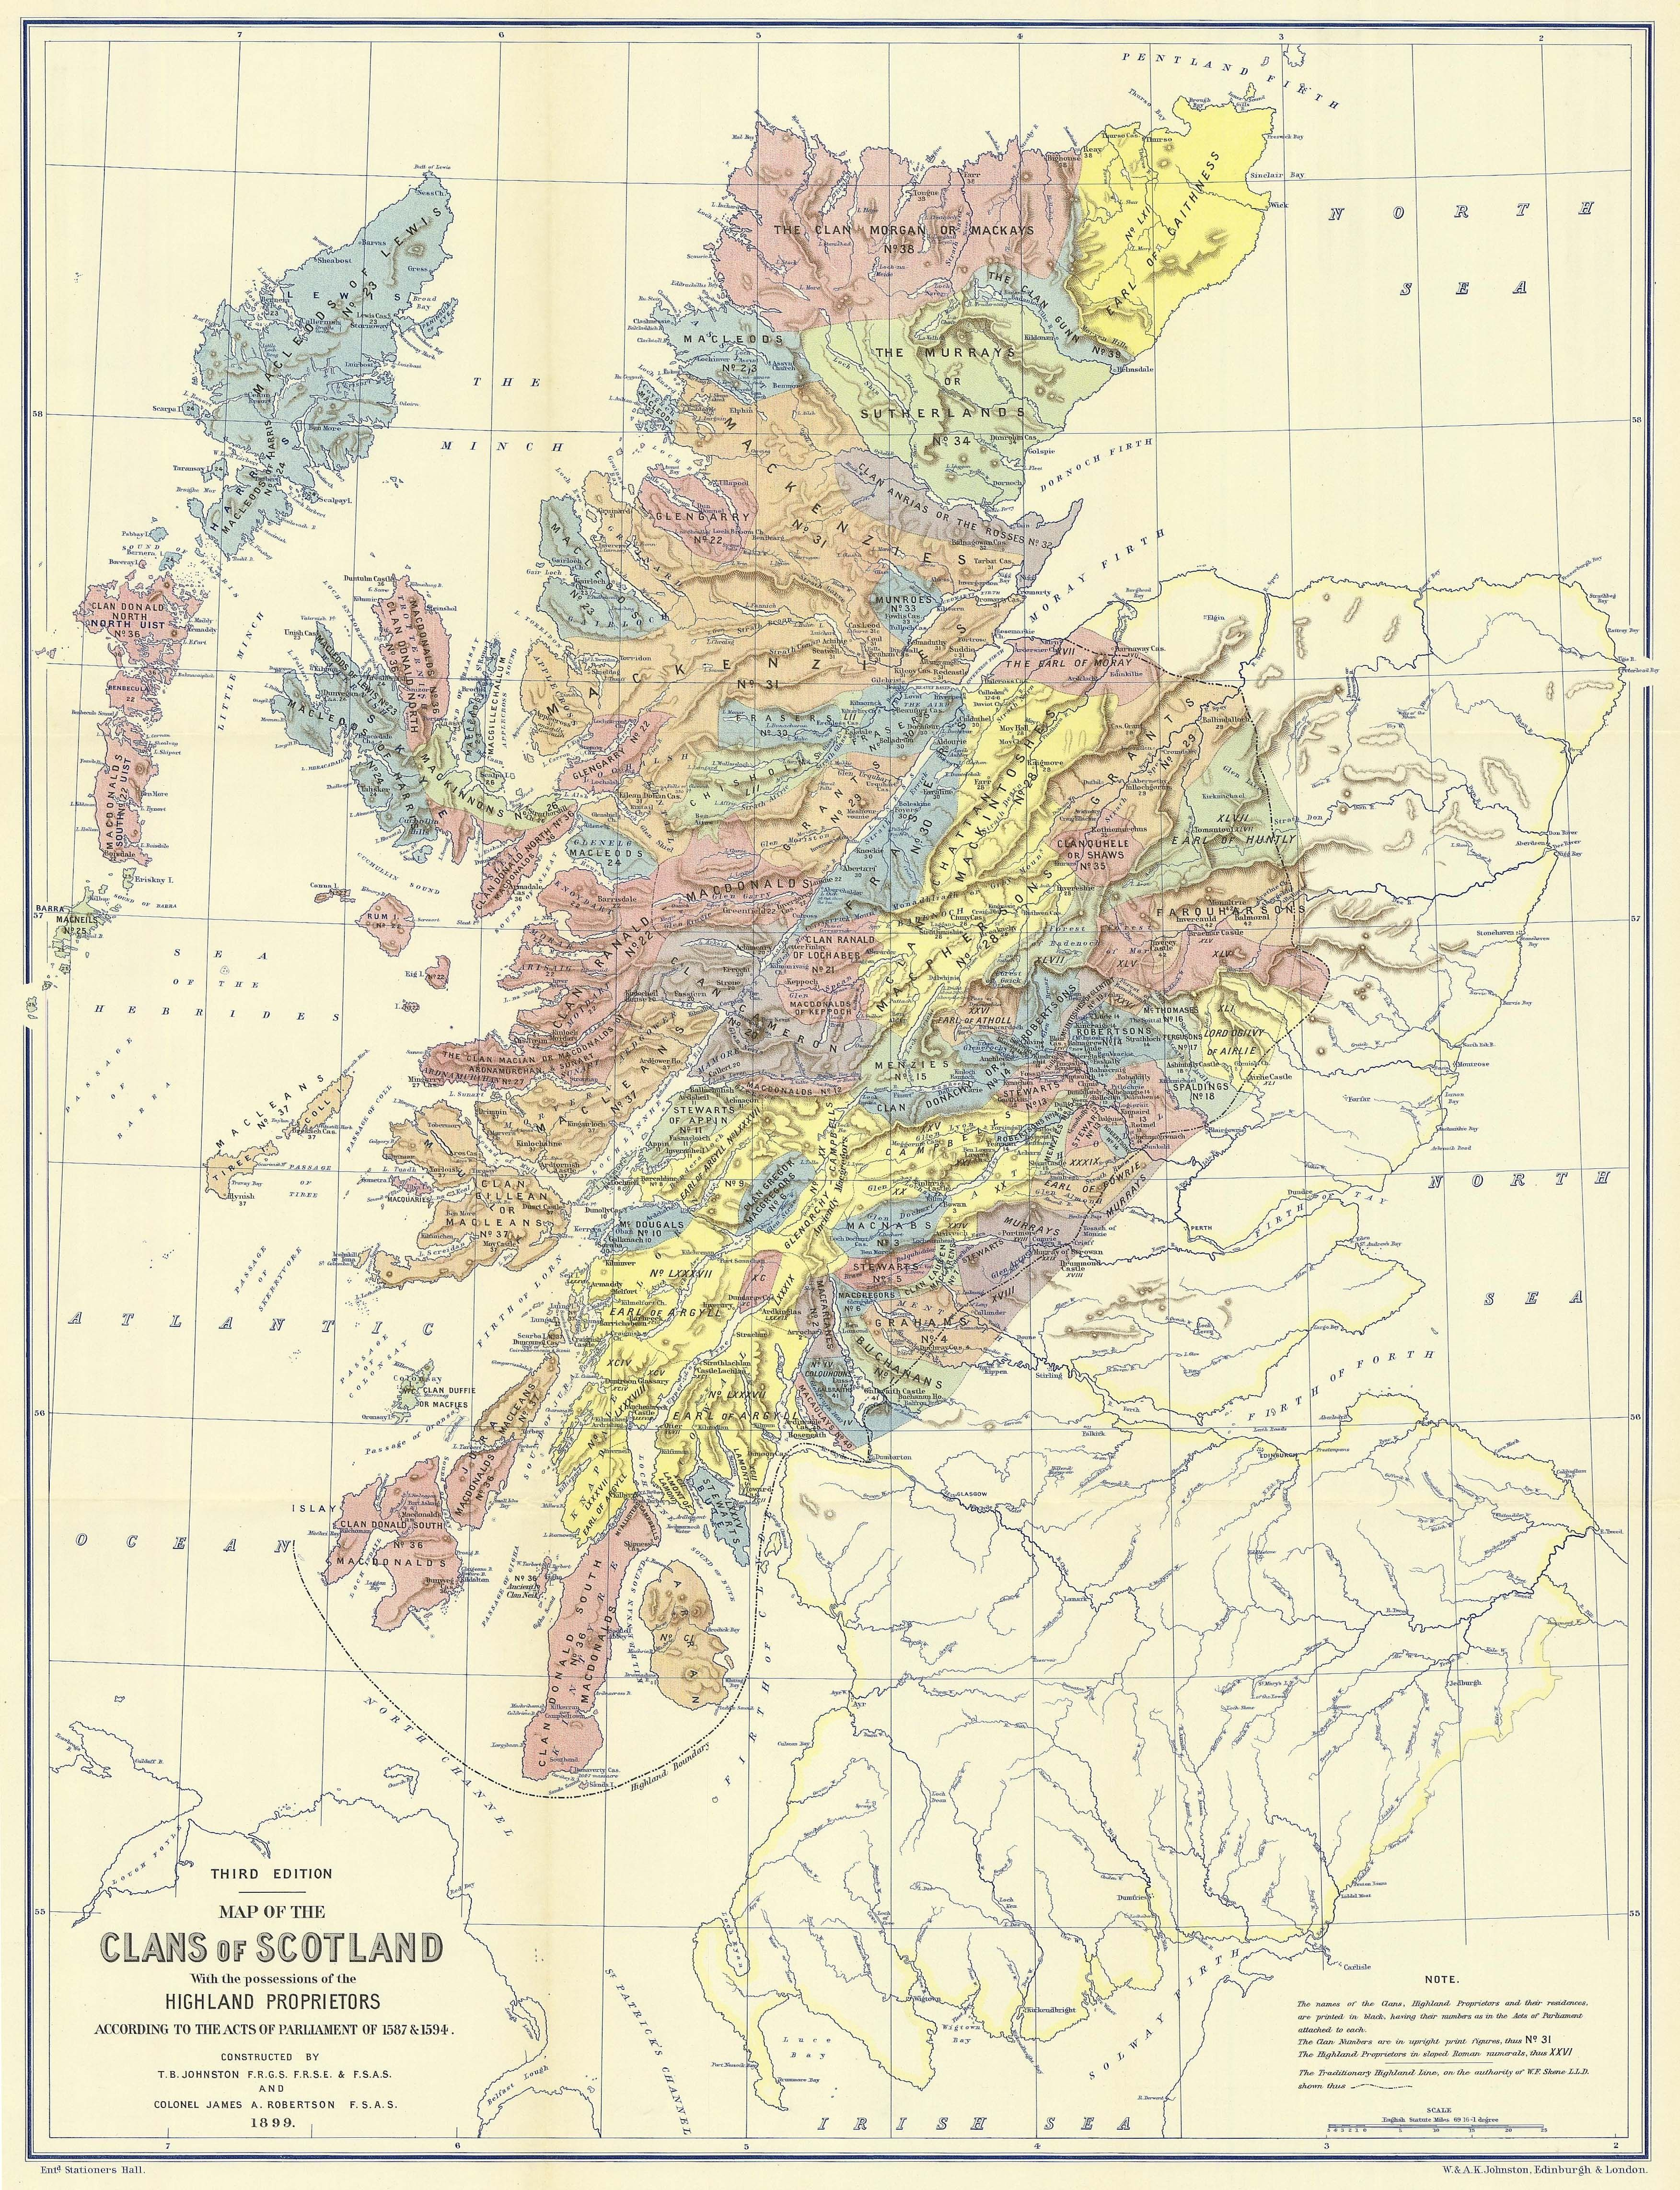 The map of Scotland shows the locations of the clans and the land